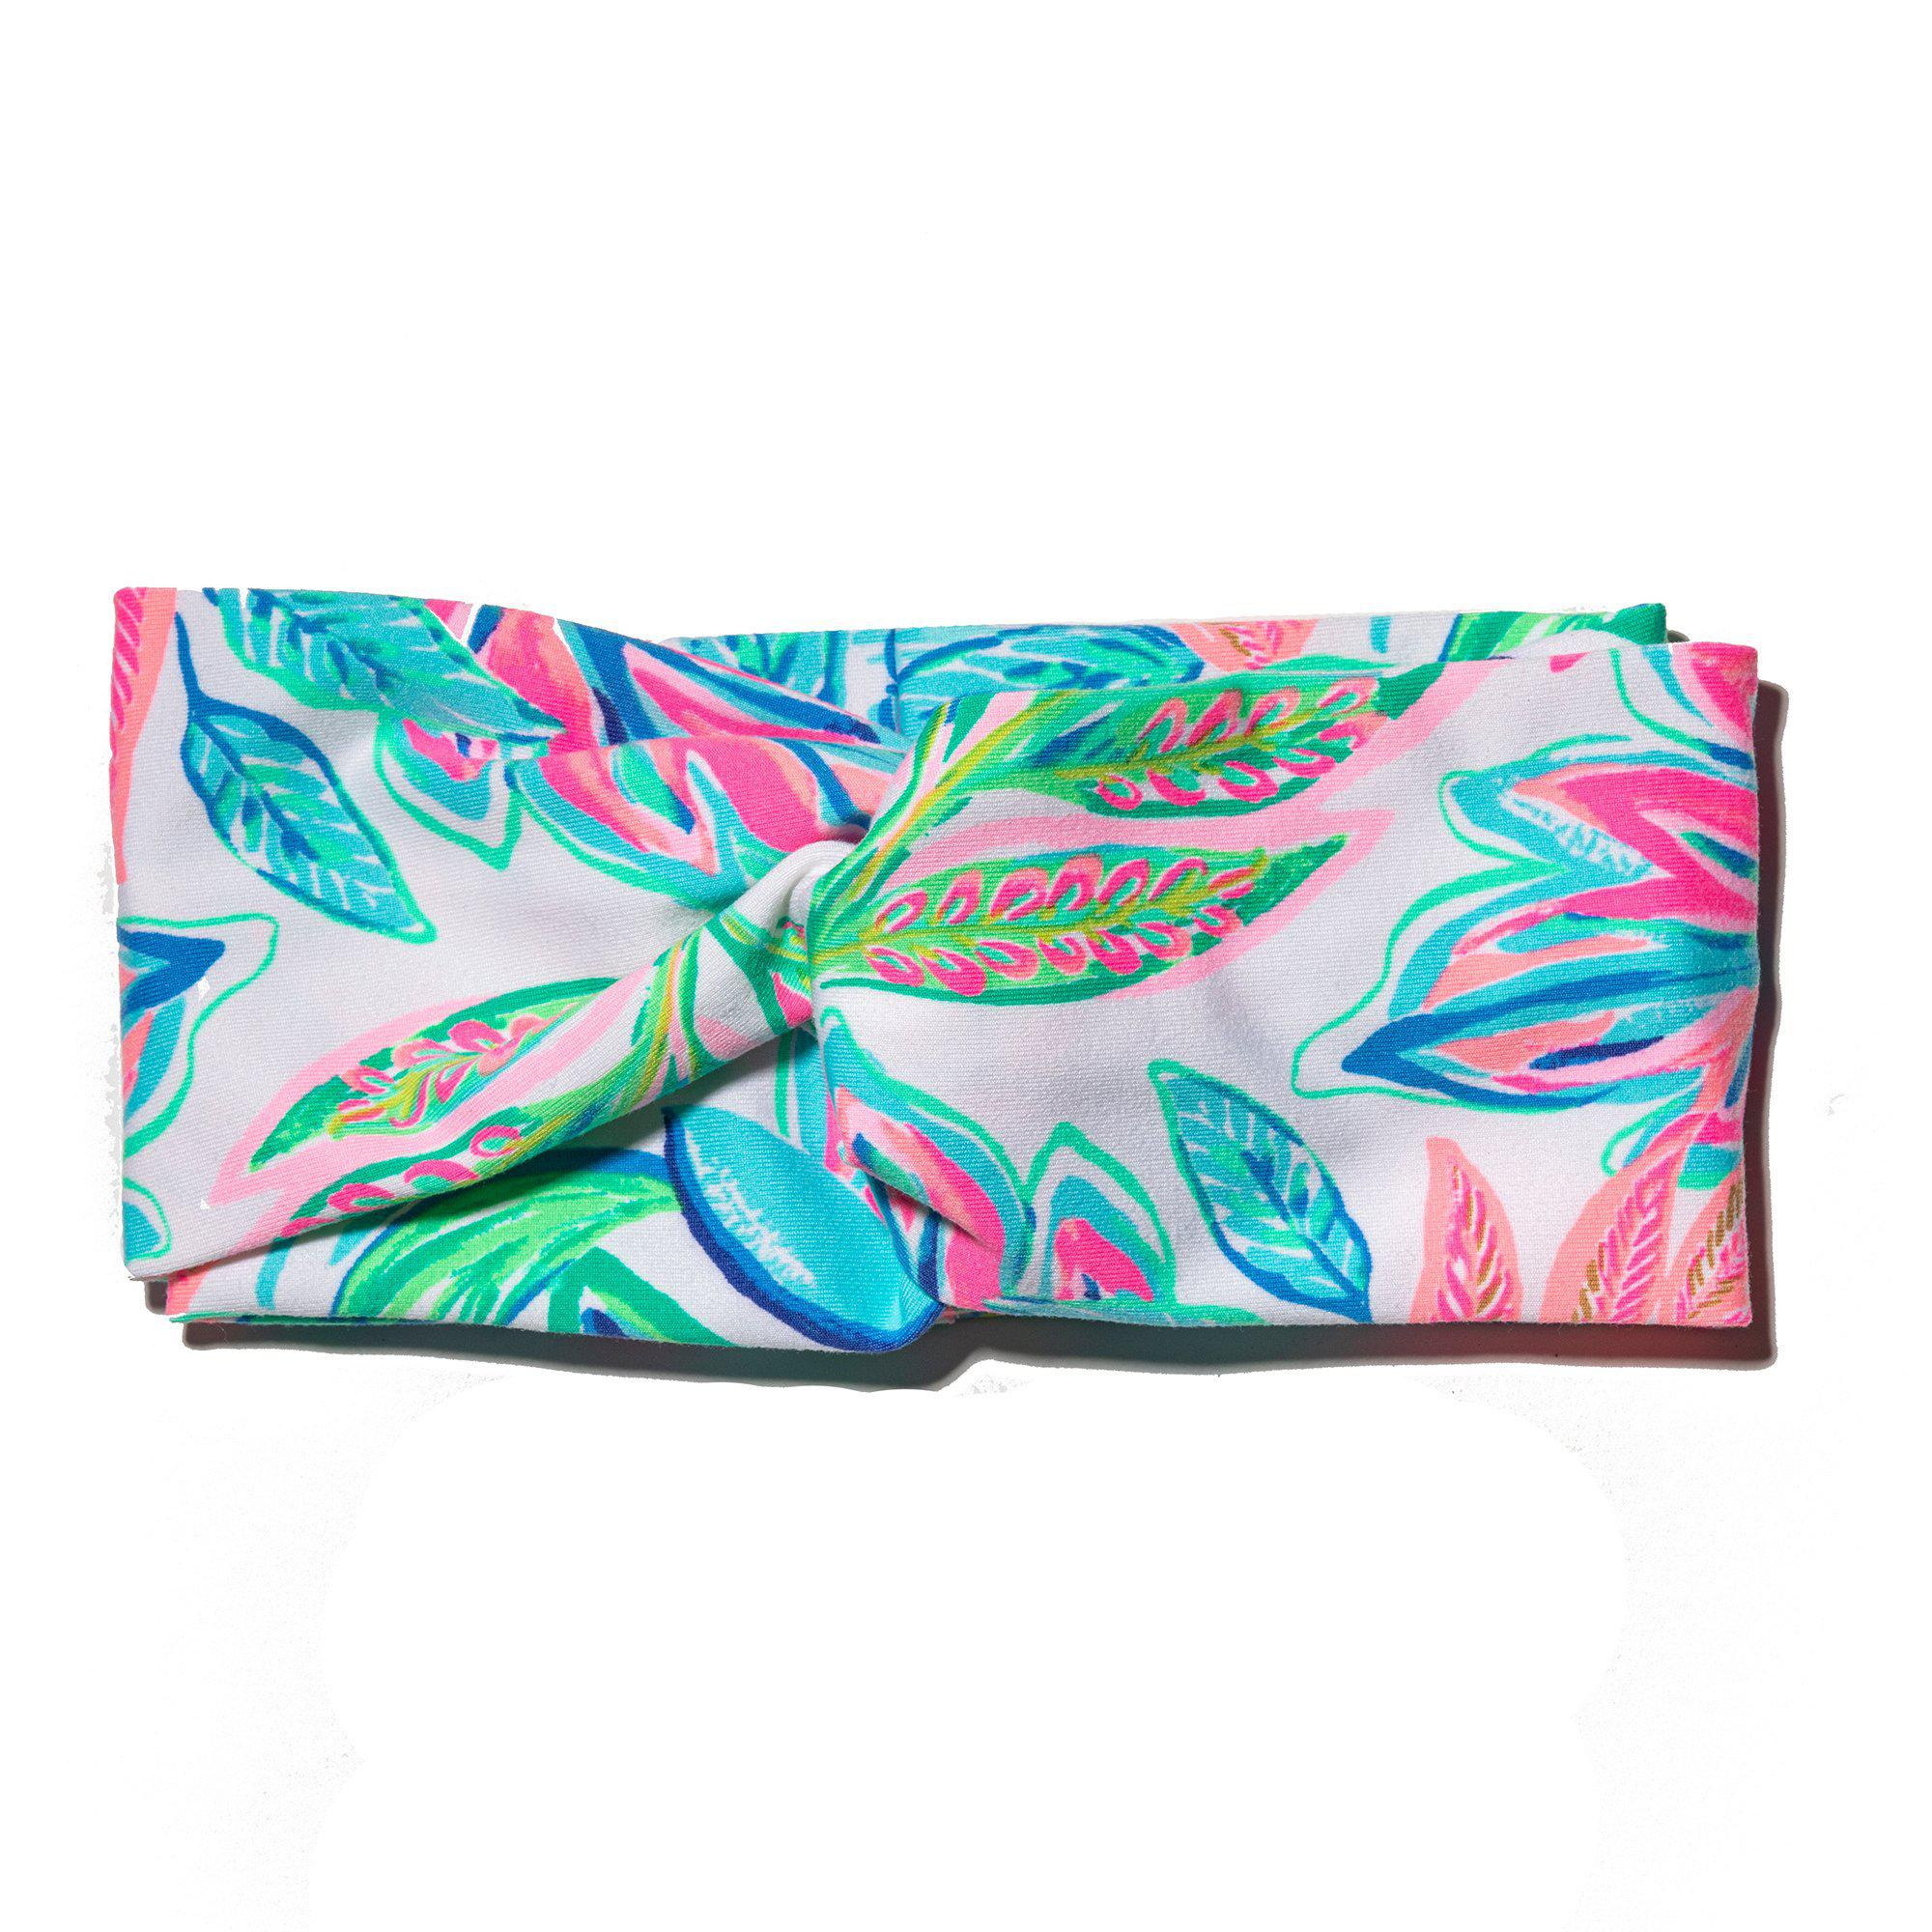 LELE SADOUGHI X LILLY PULITZER TOUCAN DO IT BETTER KNOTTED HEAD WRAP